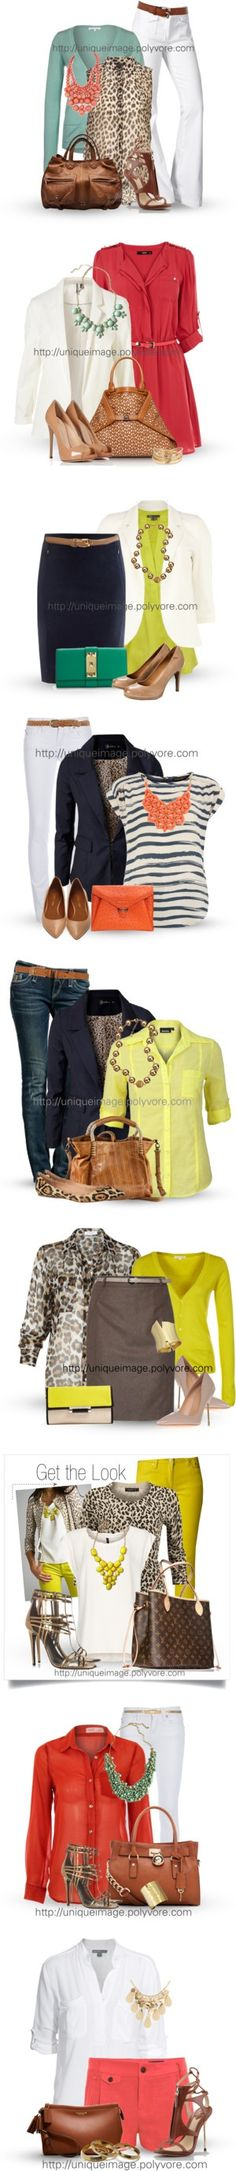 work#Work Outfit ideas #Work Outfits for Women| http://work-outfit-ideas.kira.flappyhouse.com